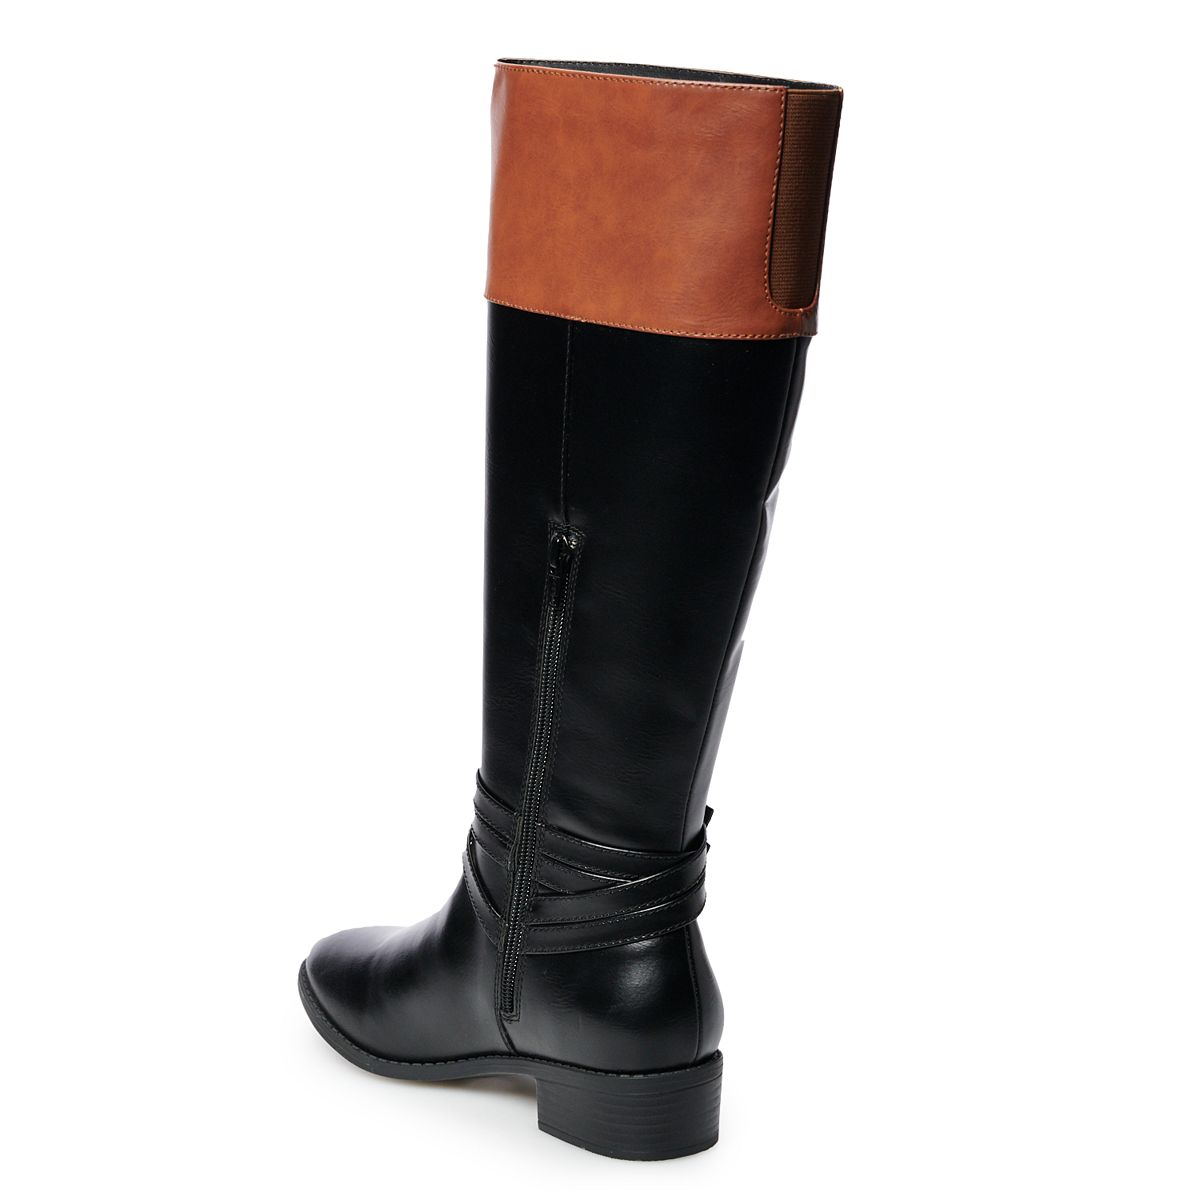 SO® Trixie Women's Riding Boots 2iDSU